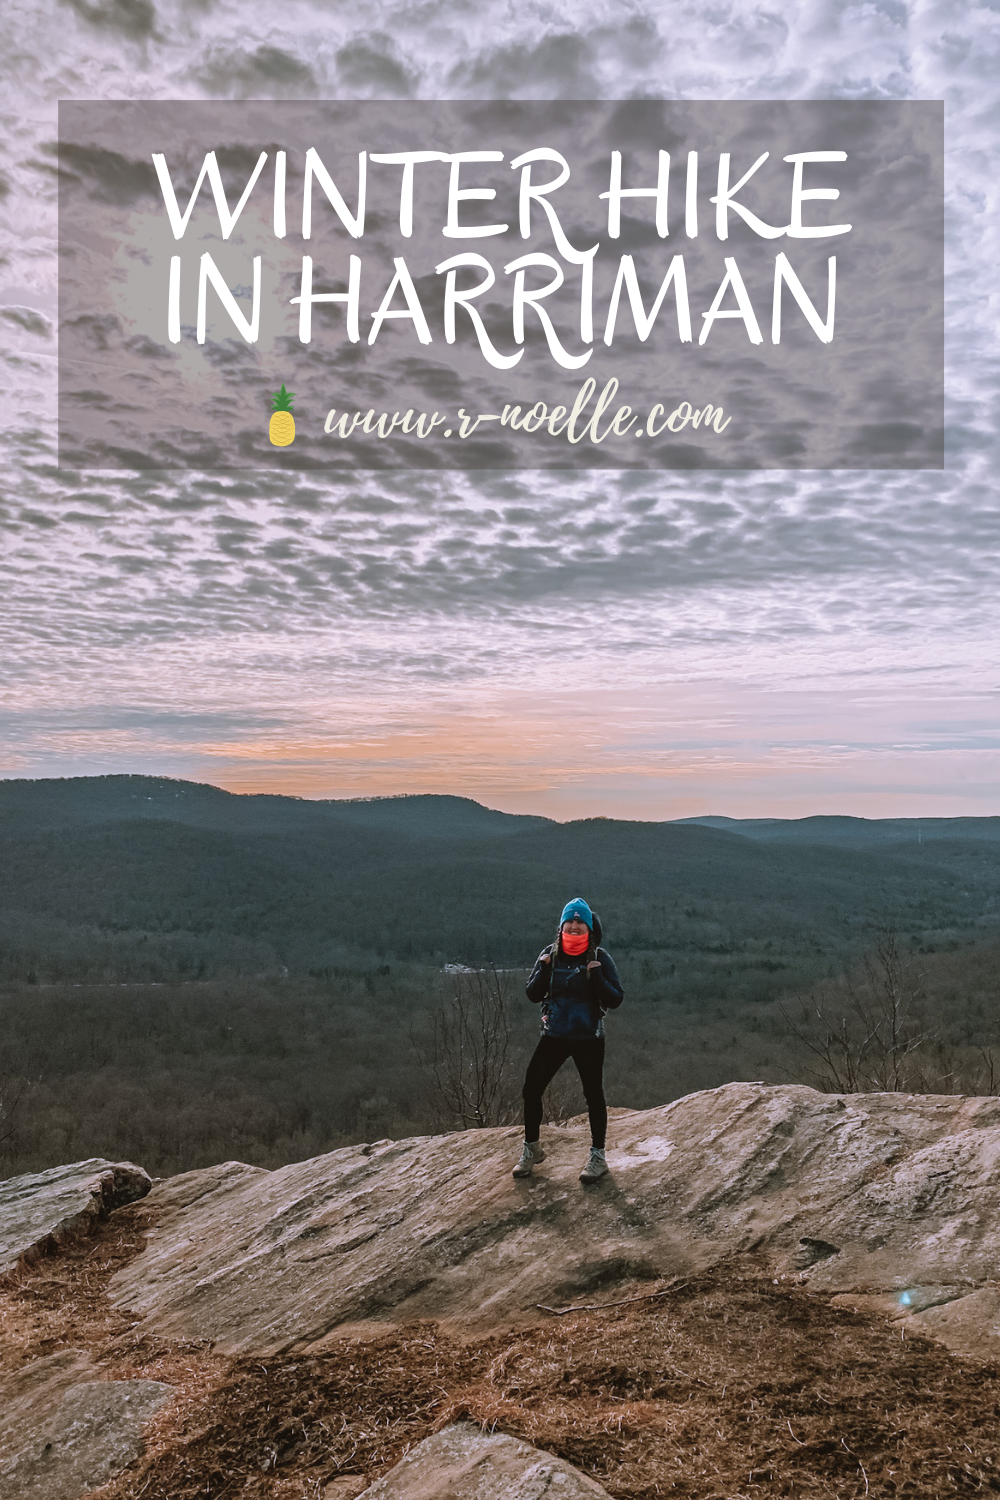 Harriman State Park is one of the state parks that is in New York State. It gets its notoriety by being near Bear Mountain State Park and accessibility from New York City. Cladius Smith's Den is the perfect winter hike to take. The area has springs that will cause the trail to be muddy or water crossing. In the winter you don't need to deal with that. This is a winter hike to do. #hiking #hikeny #harrimanstatepark| Things to do in harriman | Hike in New York